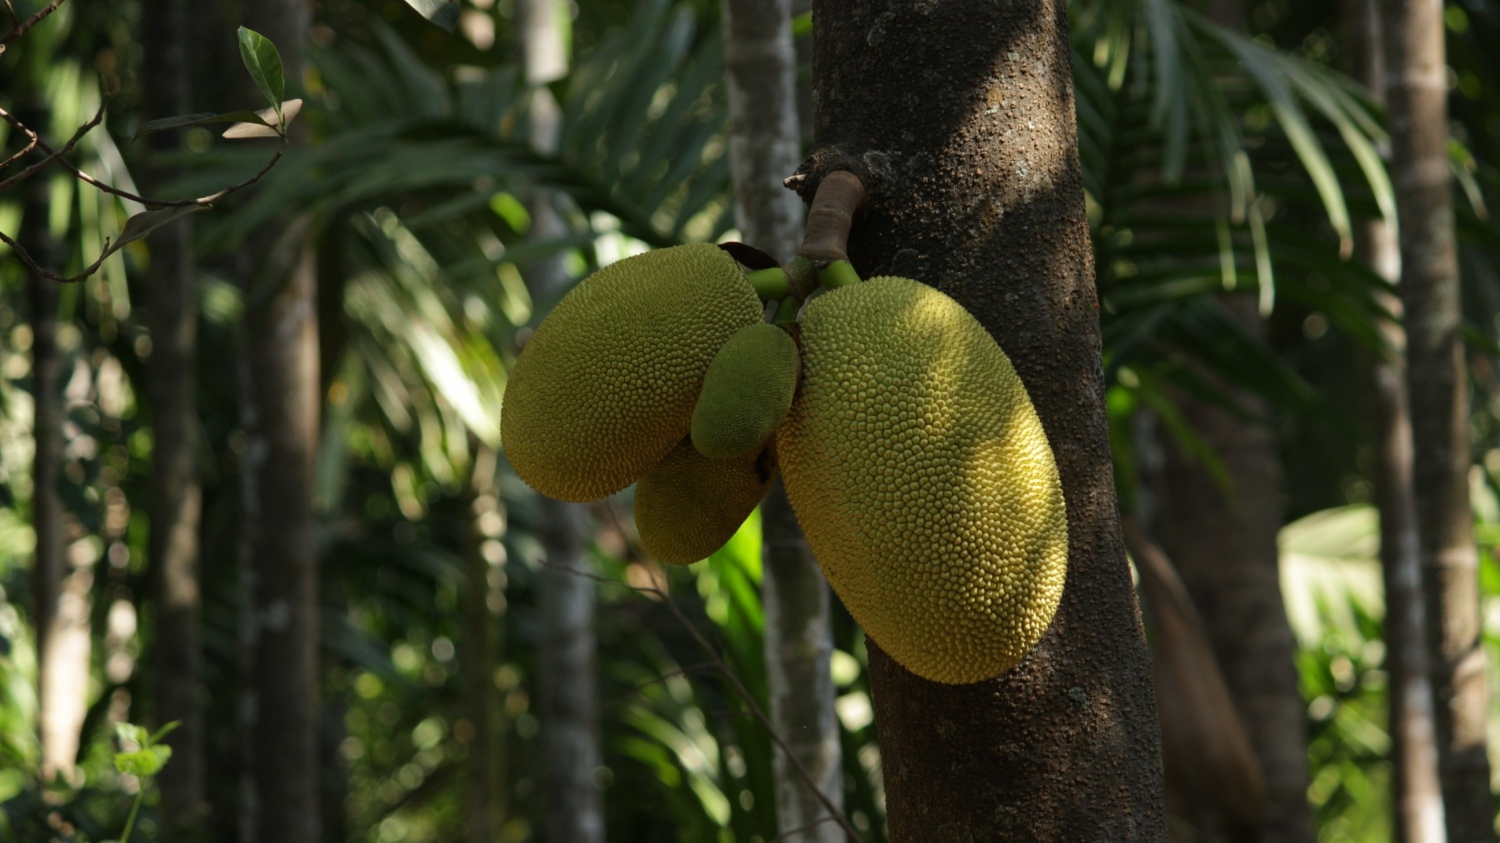 Jackfruit is similar in size or larger than durian and often confused as durian